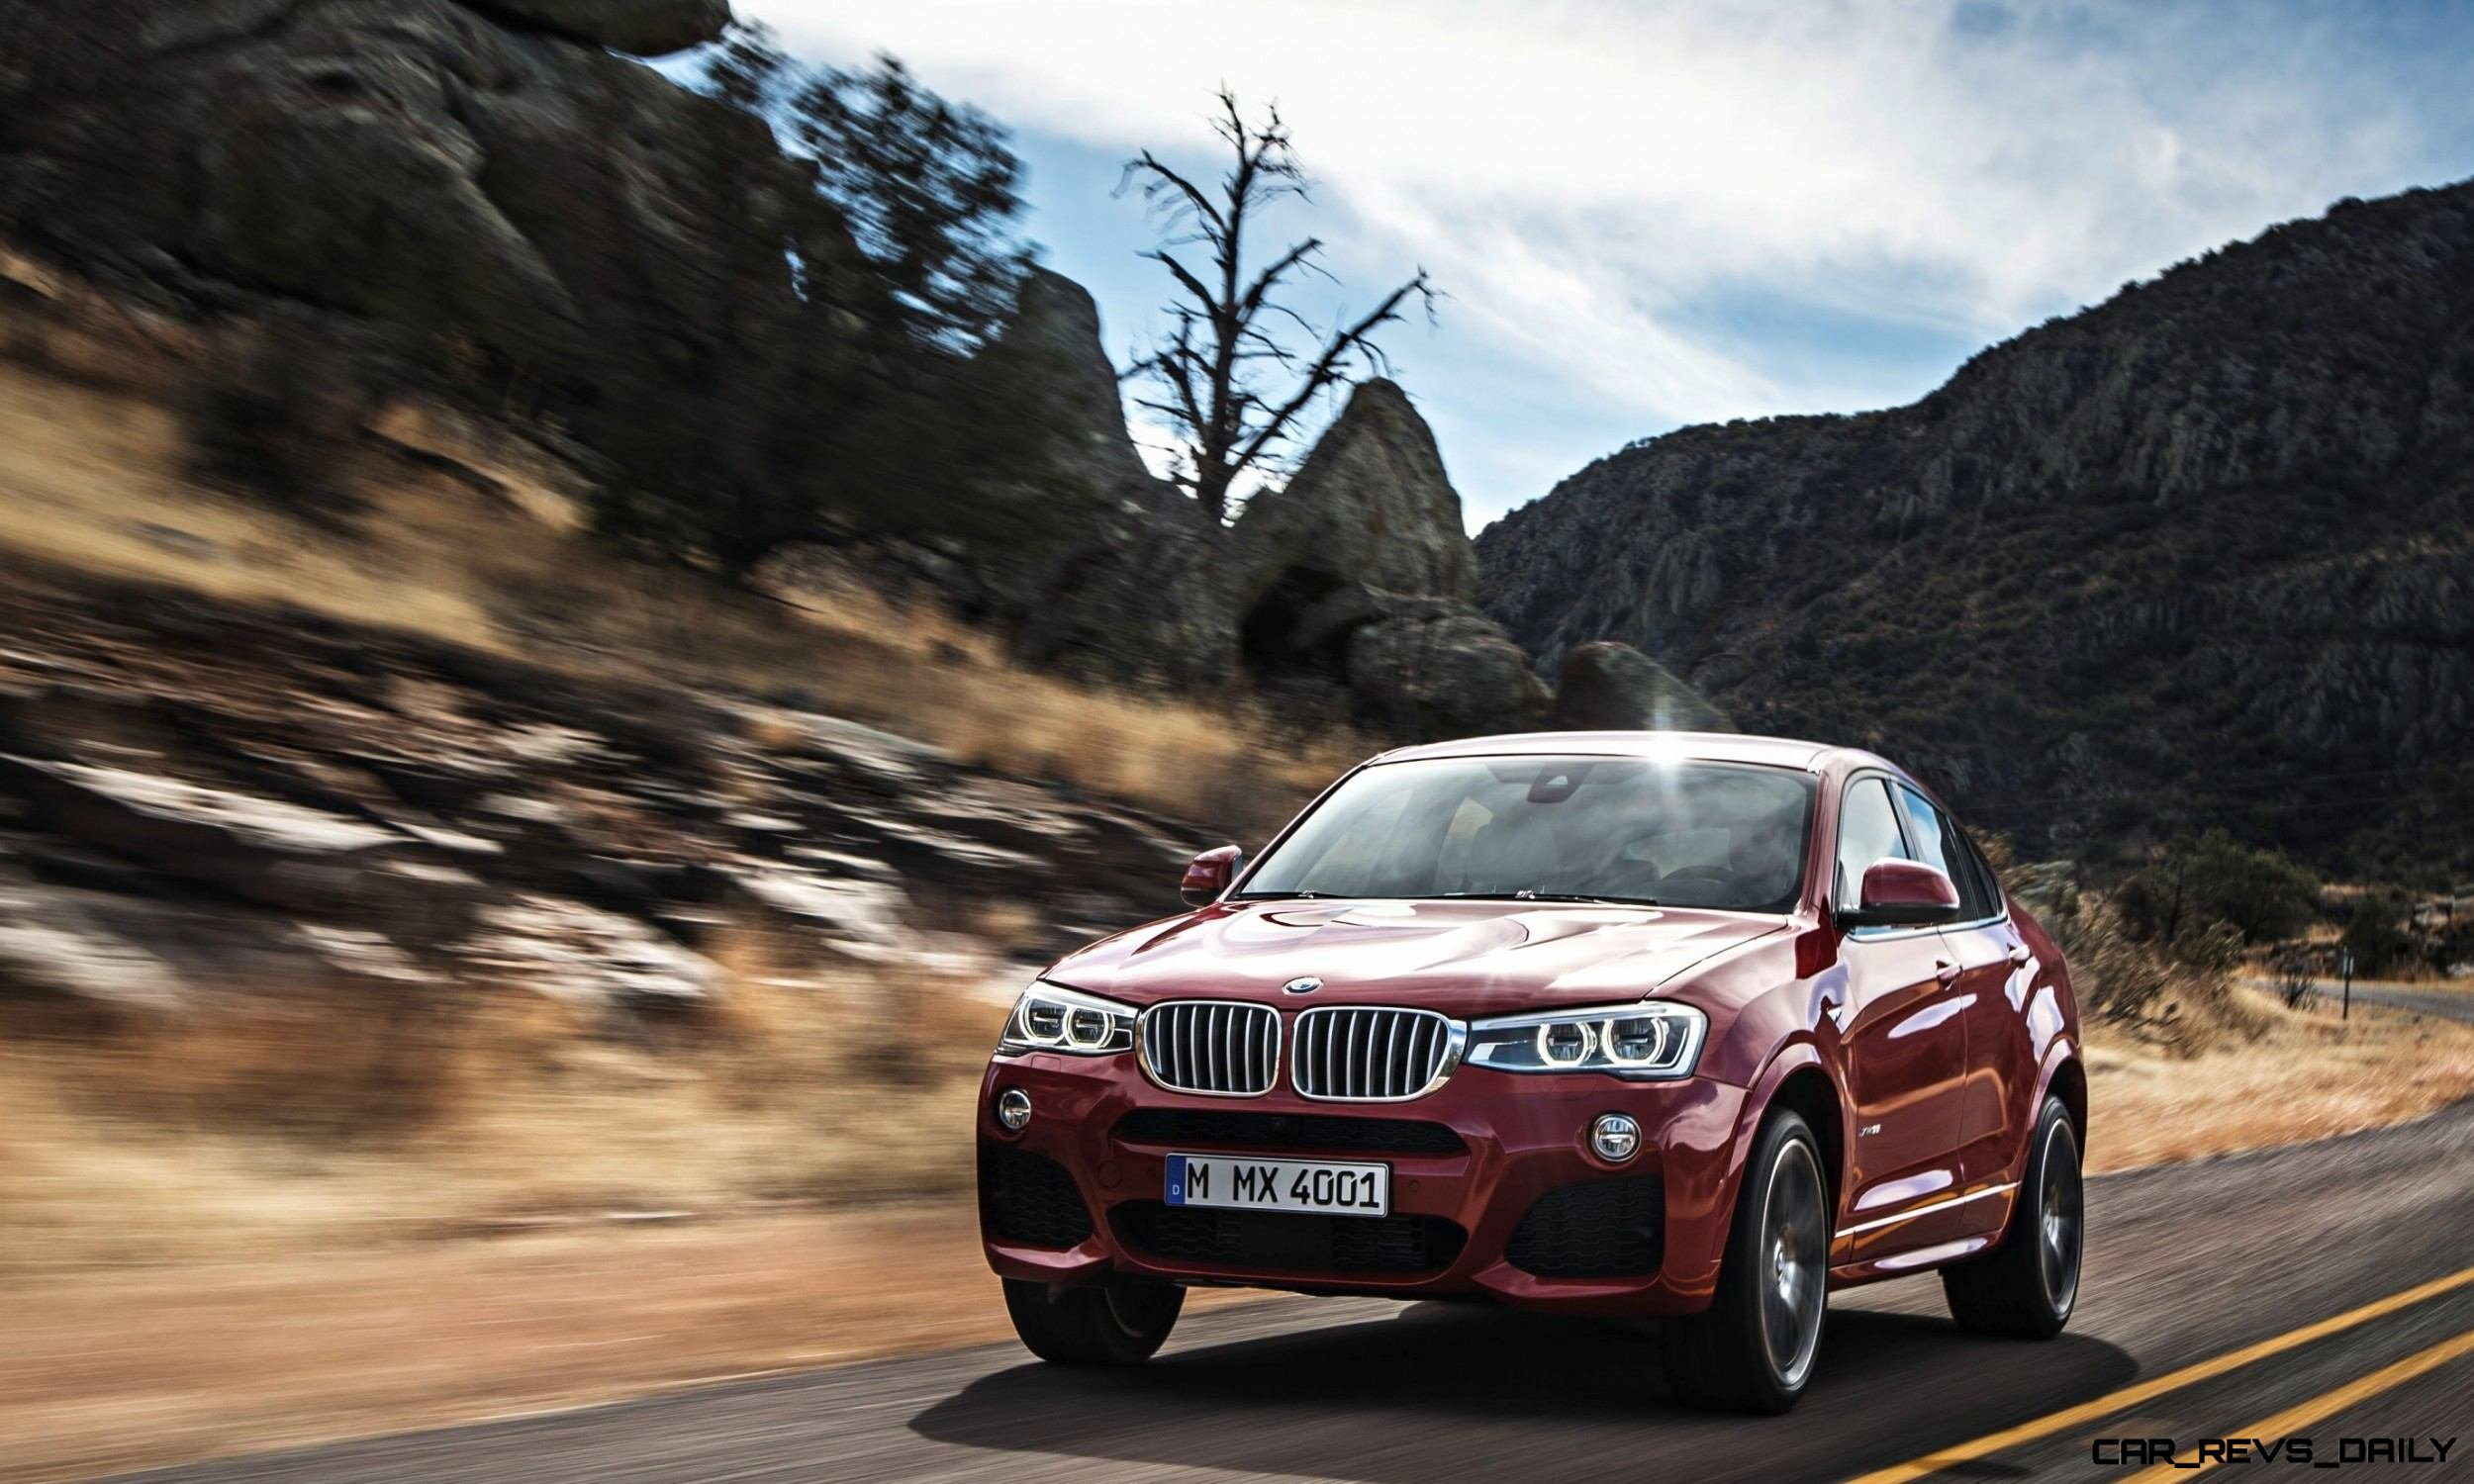 2015 BMW X4 is Here and Stunning! Official Details and 55 Photos -- Pricing from $46,000 and Fall 2014 Arrival Expected 40